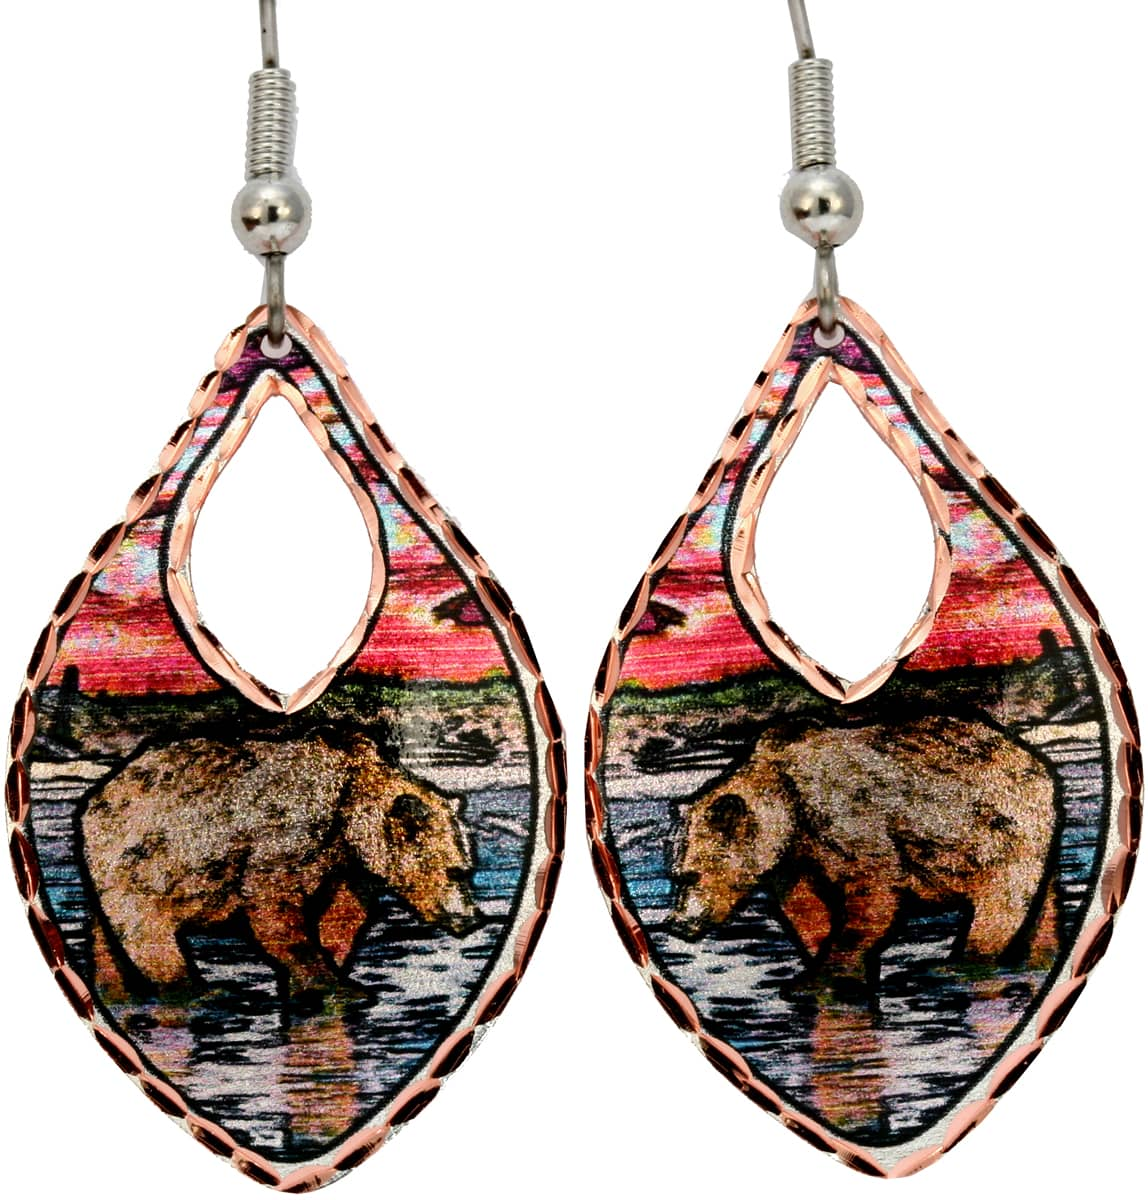 Alaska grizzly bear earrings created in a river scene bear catching salmon fish